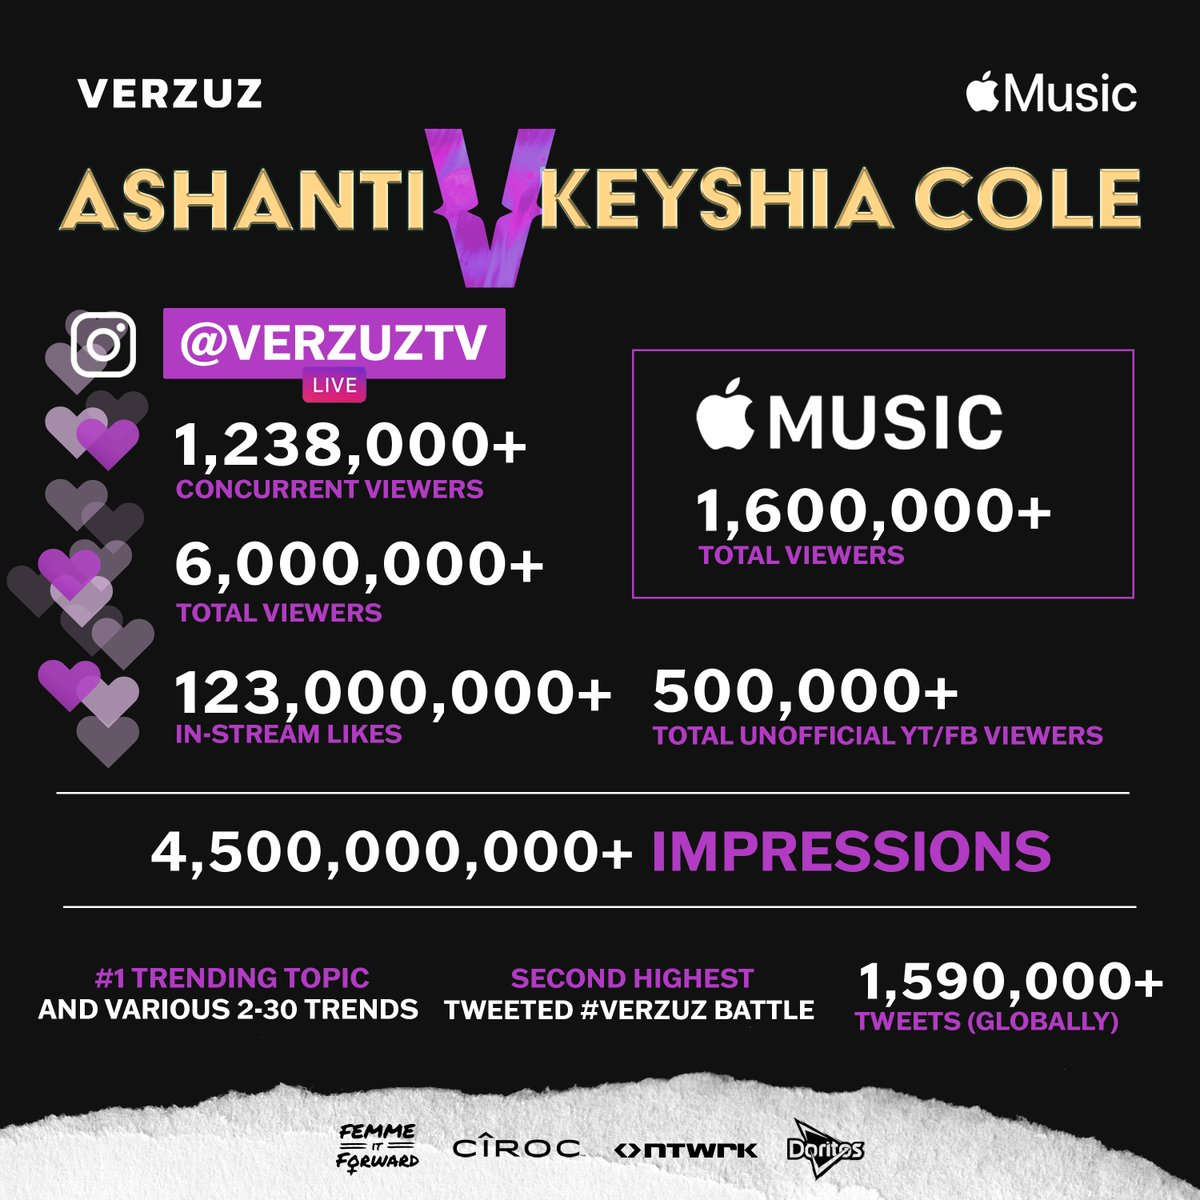 More than 8.1 MILLION viewers tuned in across Instagram, Apple Music, and other streams to watch @Ashanti and  @KeyshiaCole ♎️♎️  Let's look at the stats (THREAD)